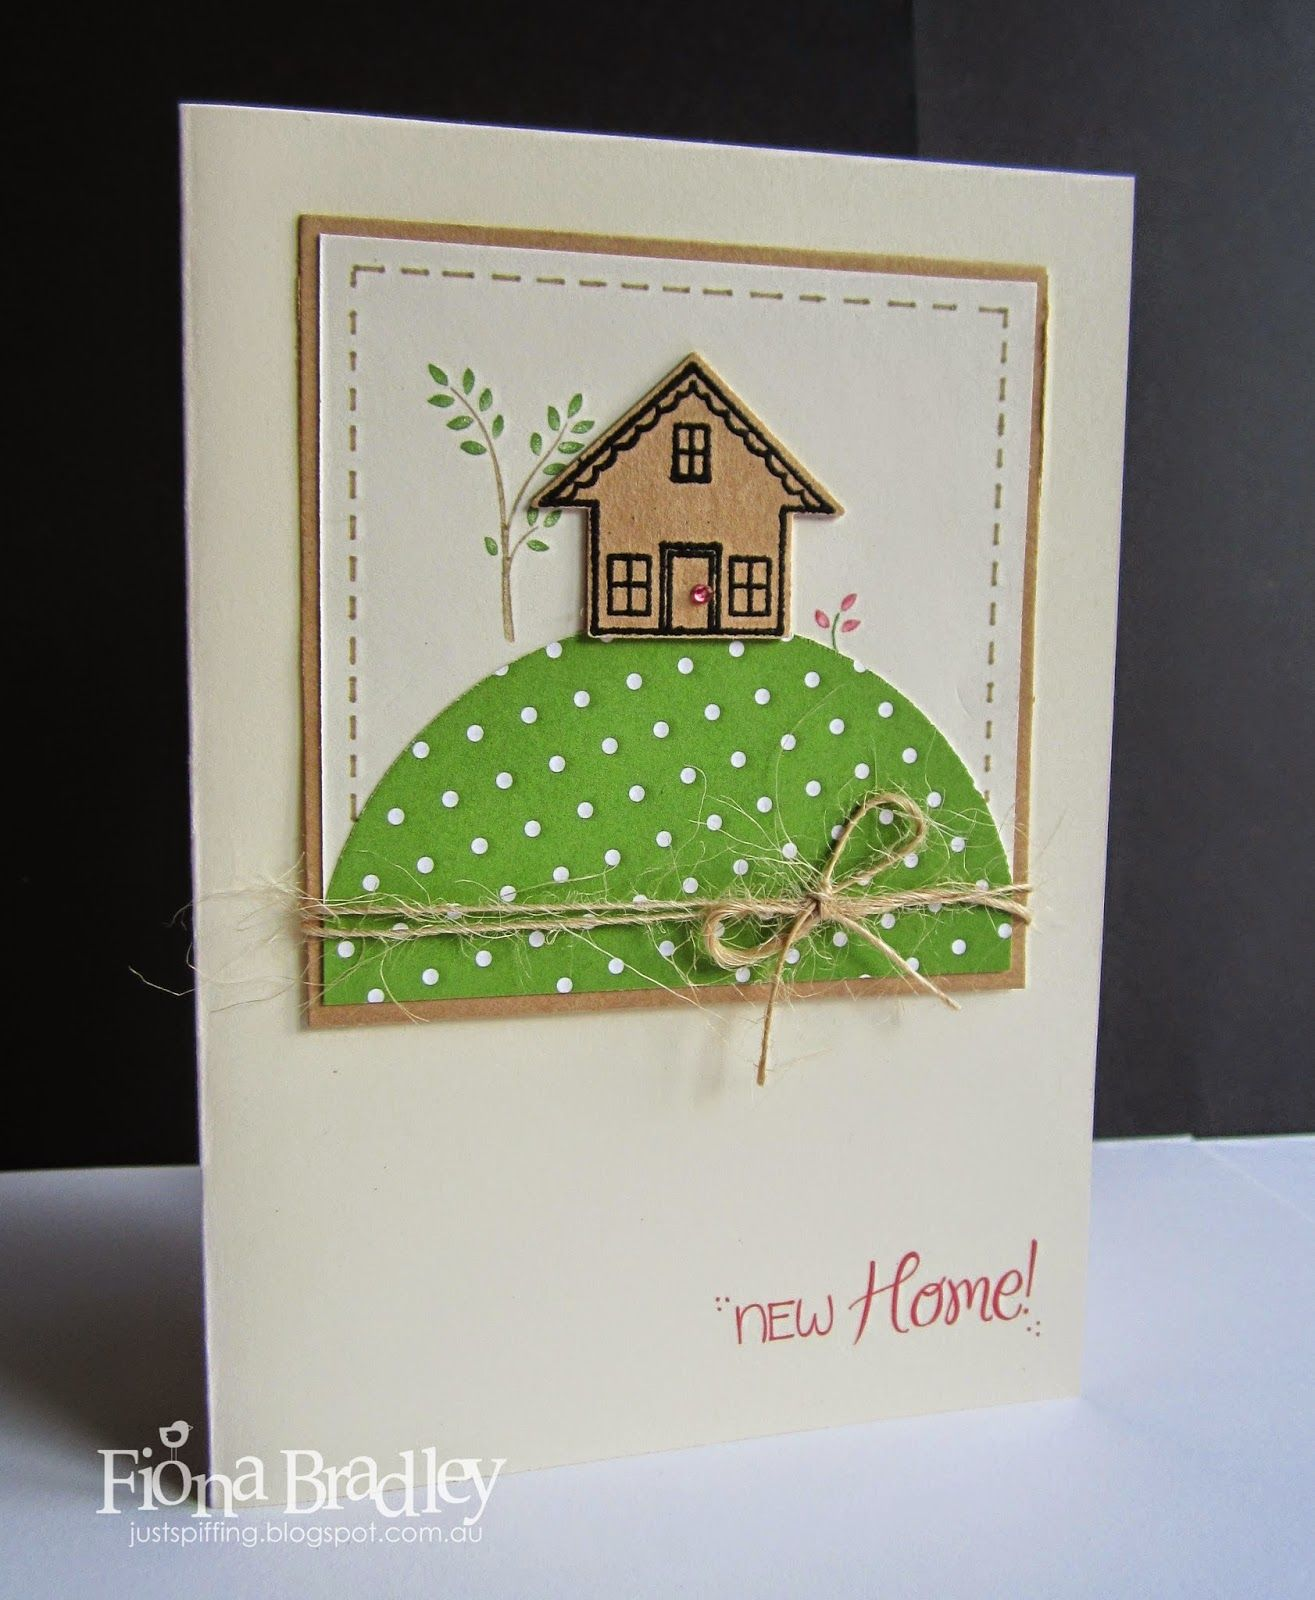 New Home Stampin Up You Brighten My Day Stamp Set Just